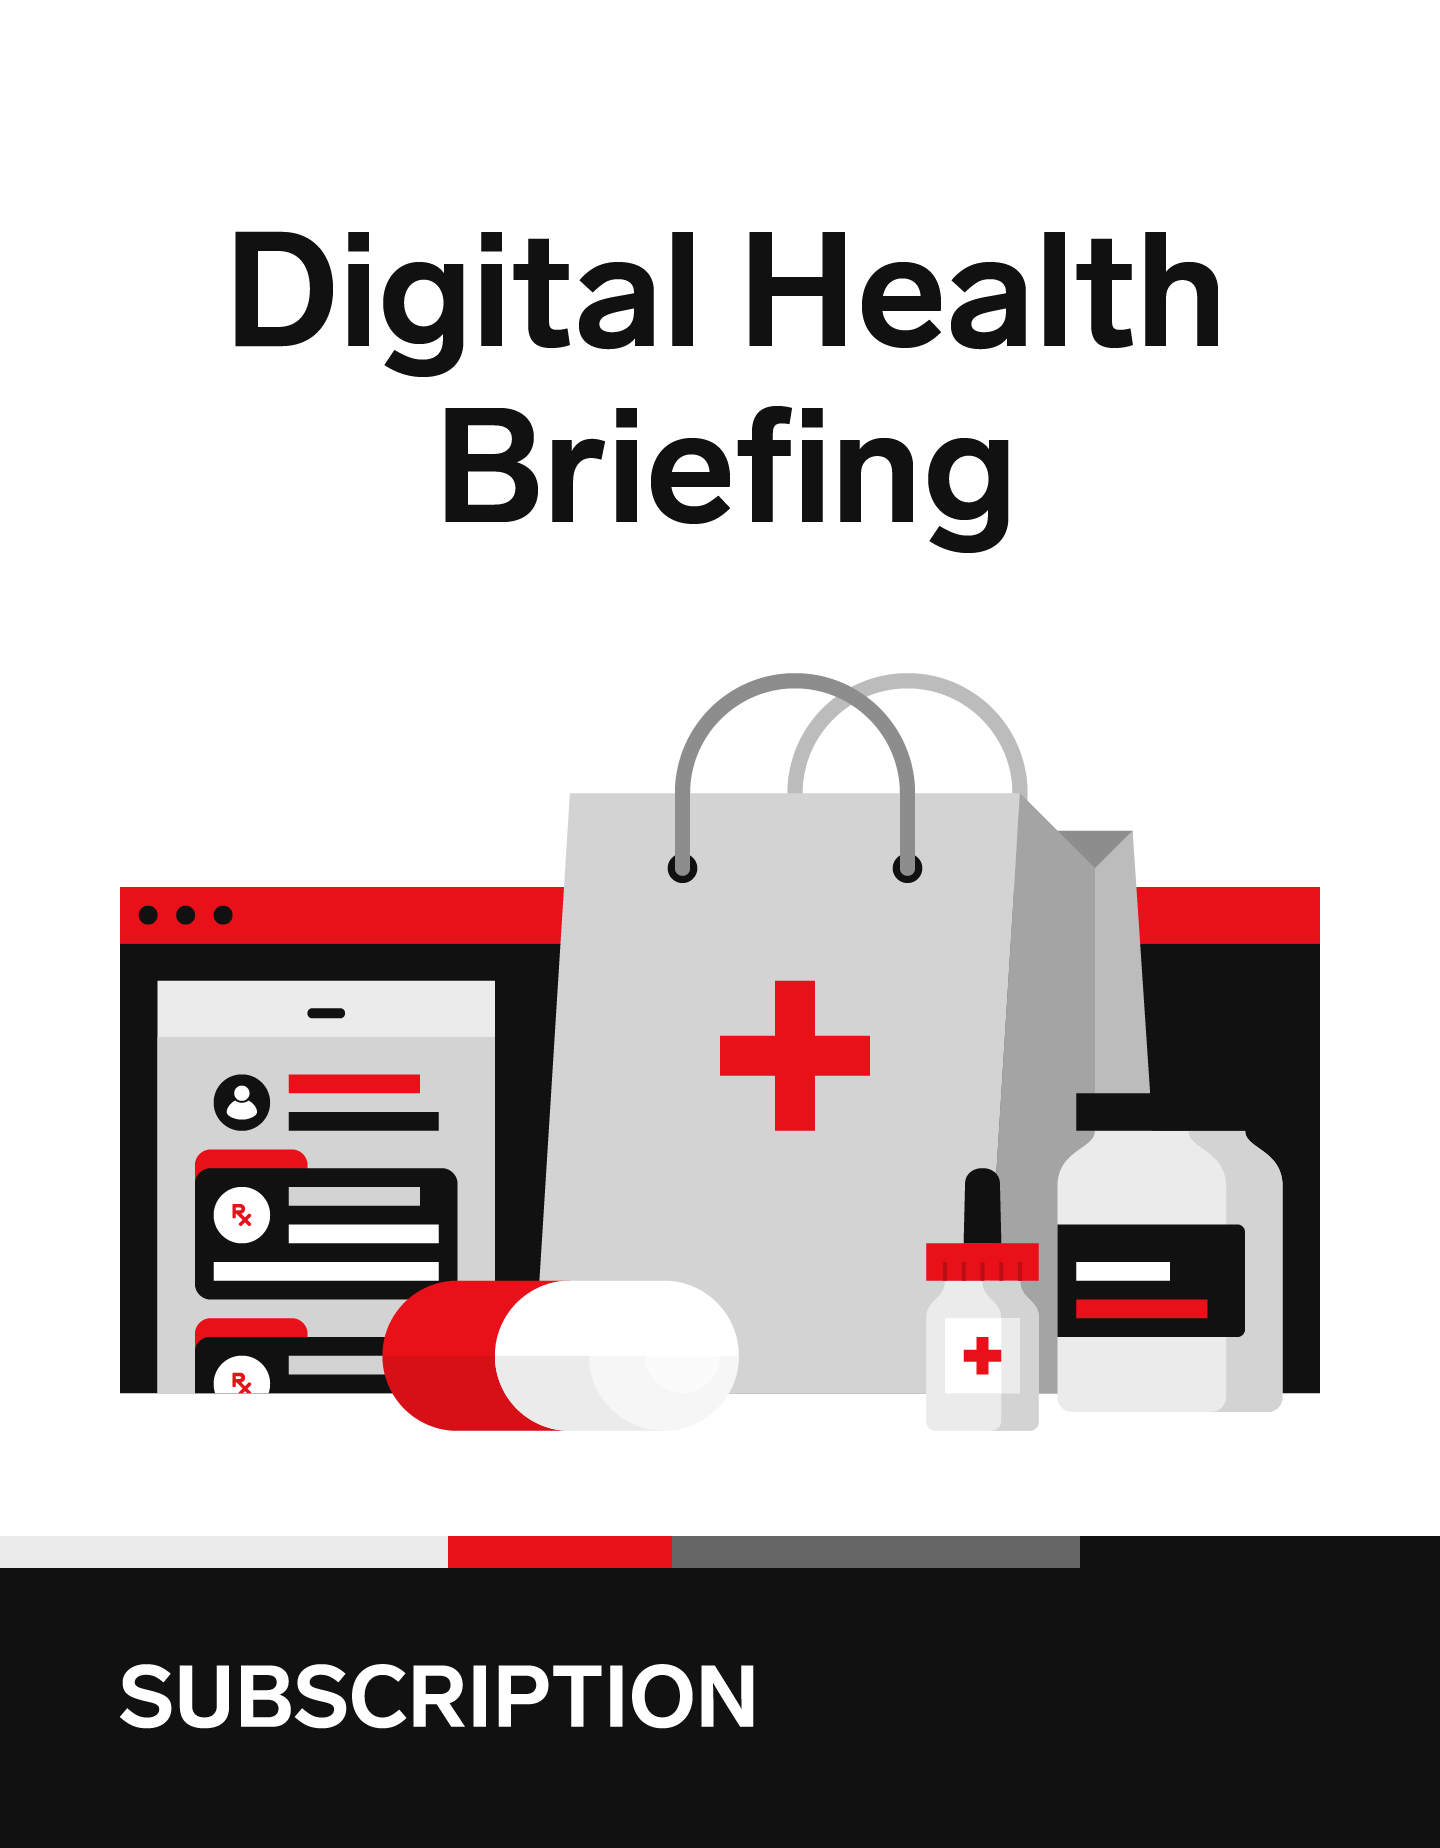 Digital Health Briefing Subscription